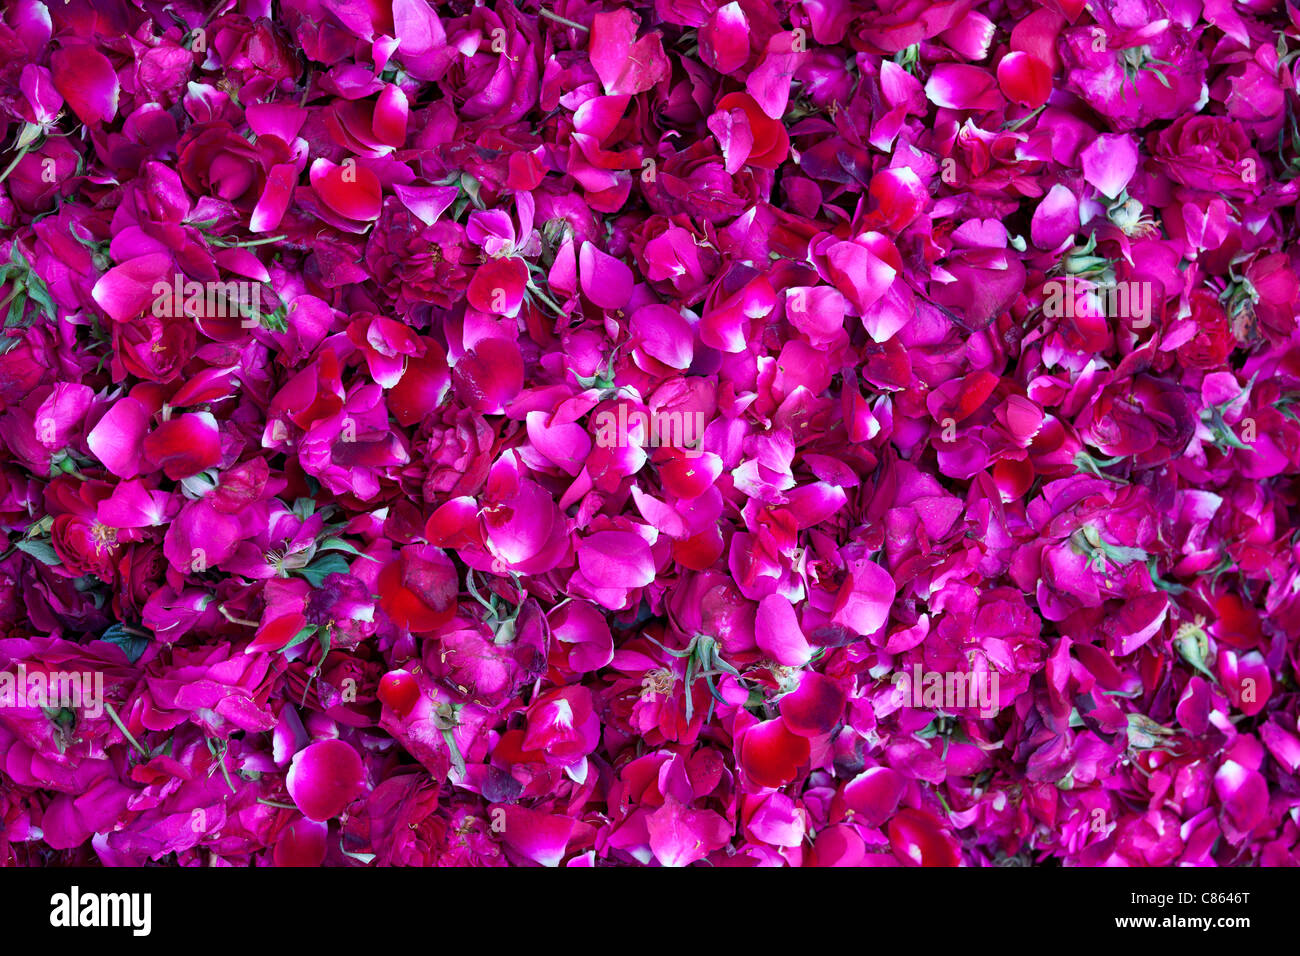 Rose petals for religious ceremonies at Mehrauli Flower Market, New Delhi, India - Stock Image